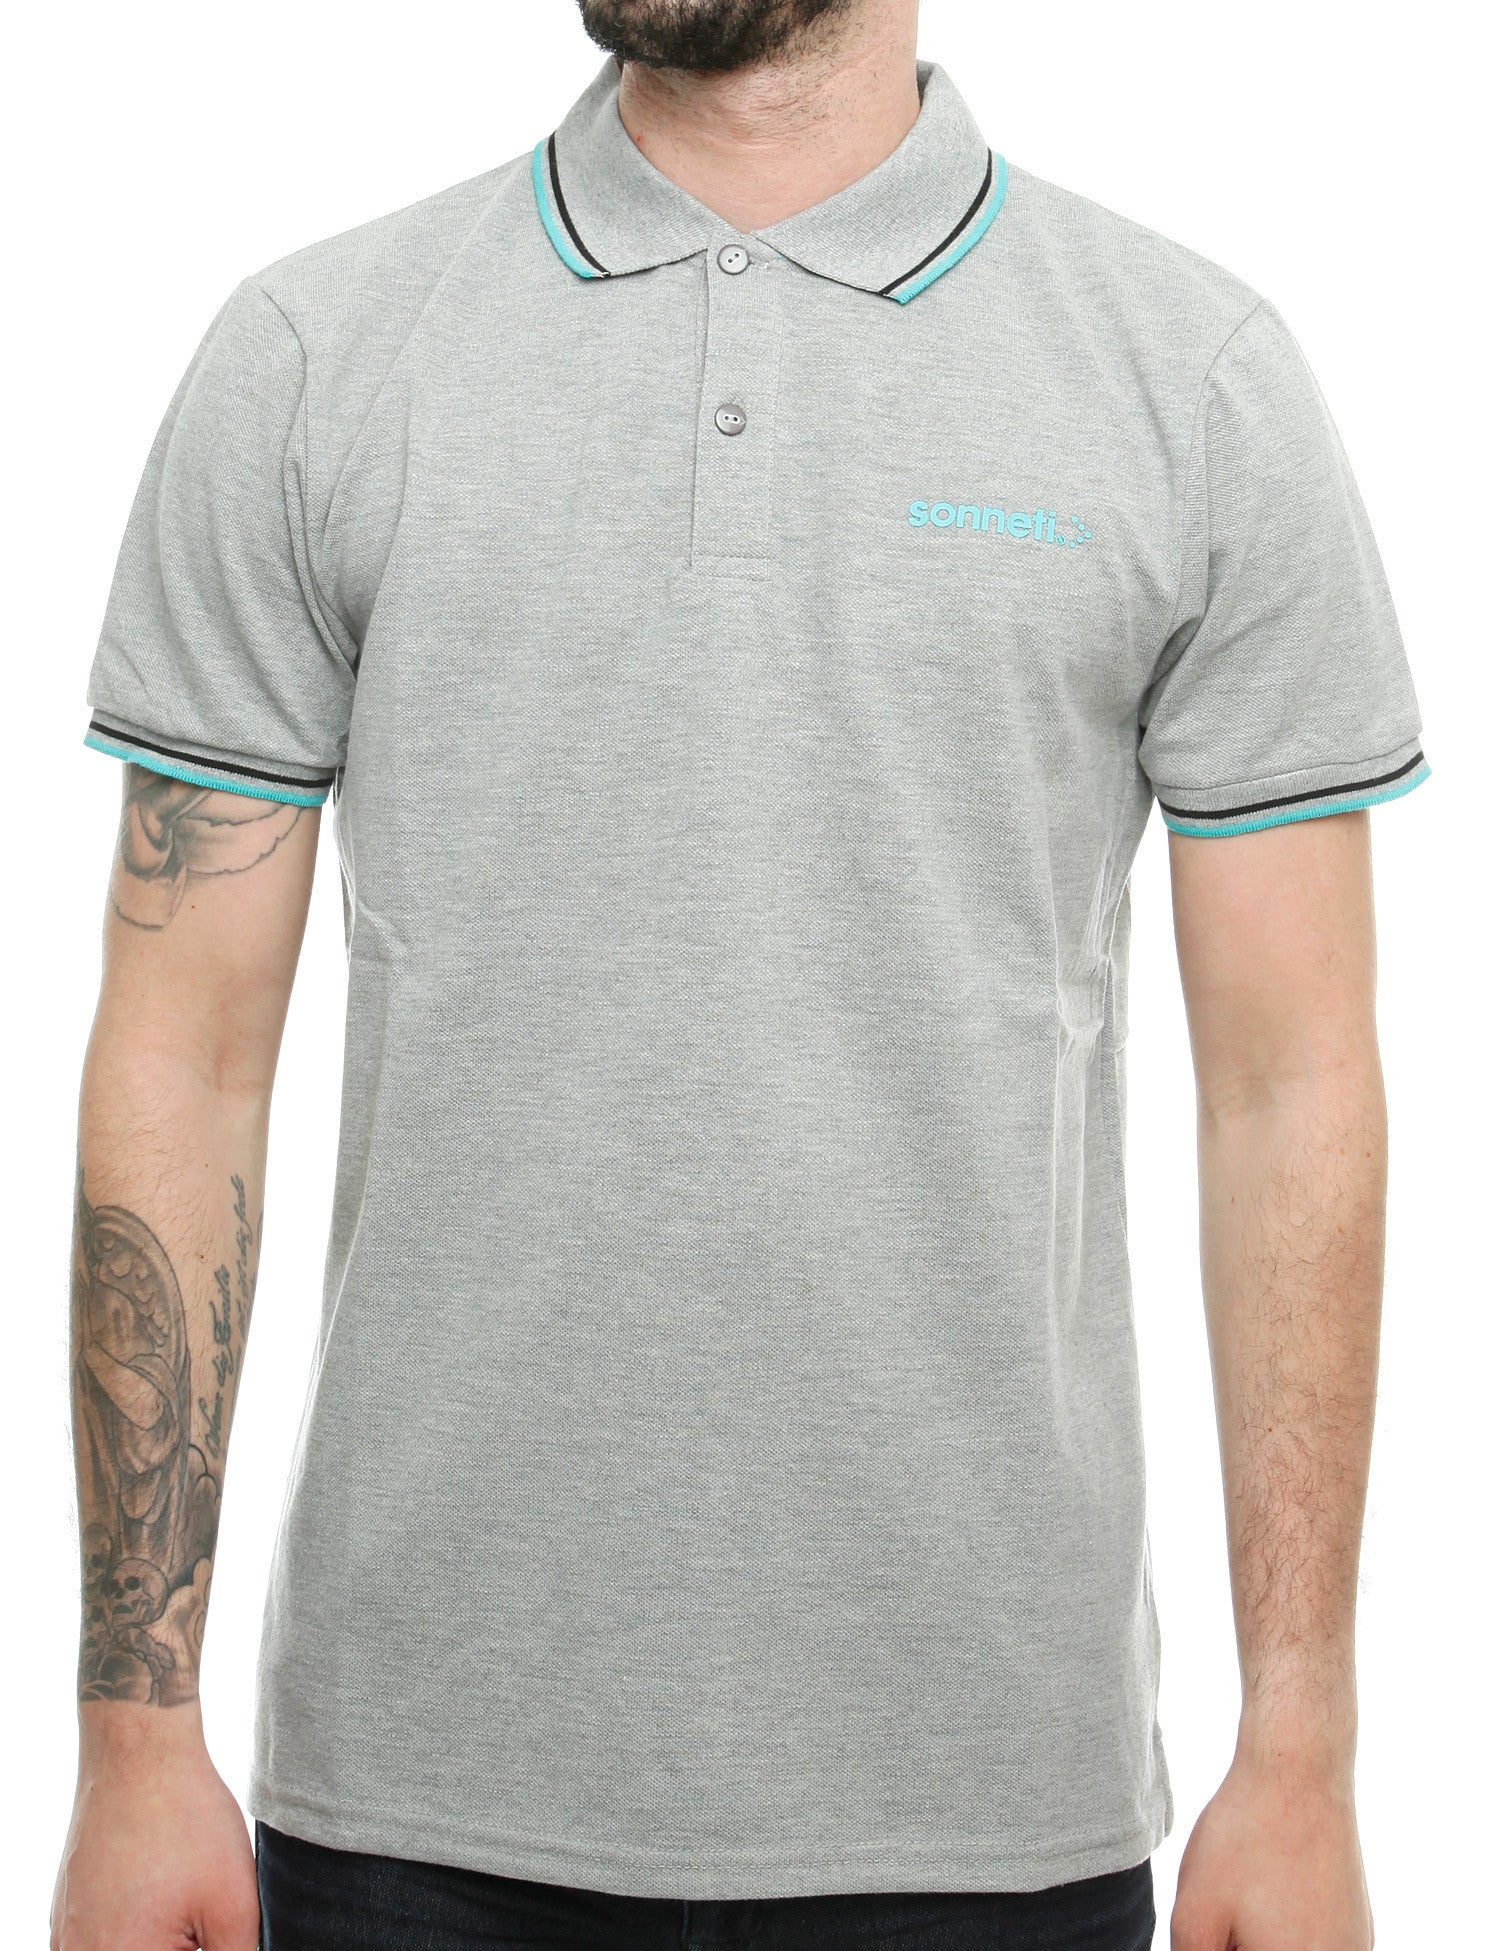 Sonneti CITY ROAD Polo Shirt NSK00169 Grey